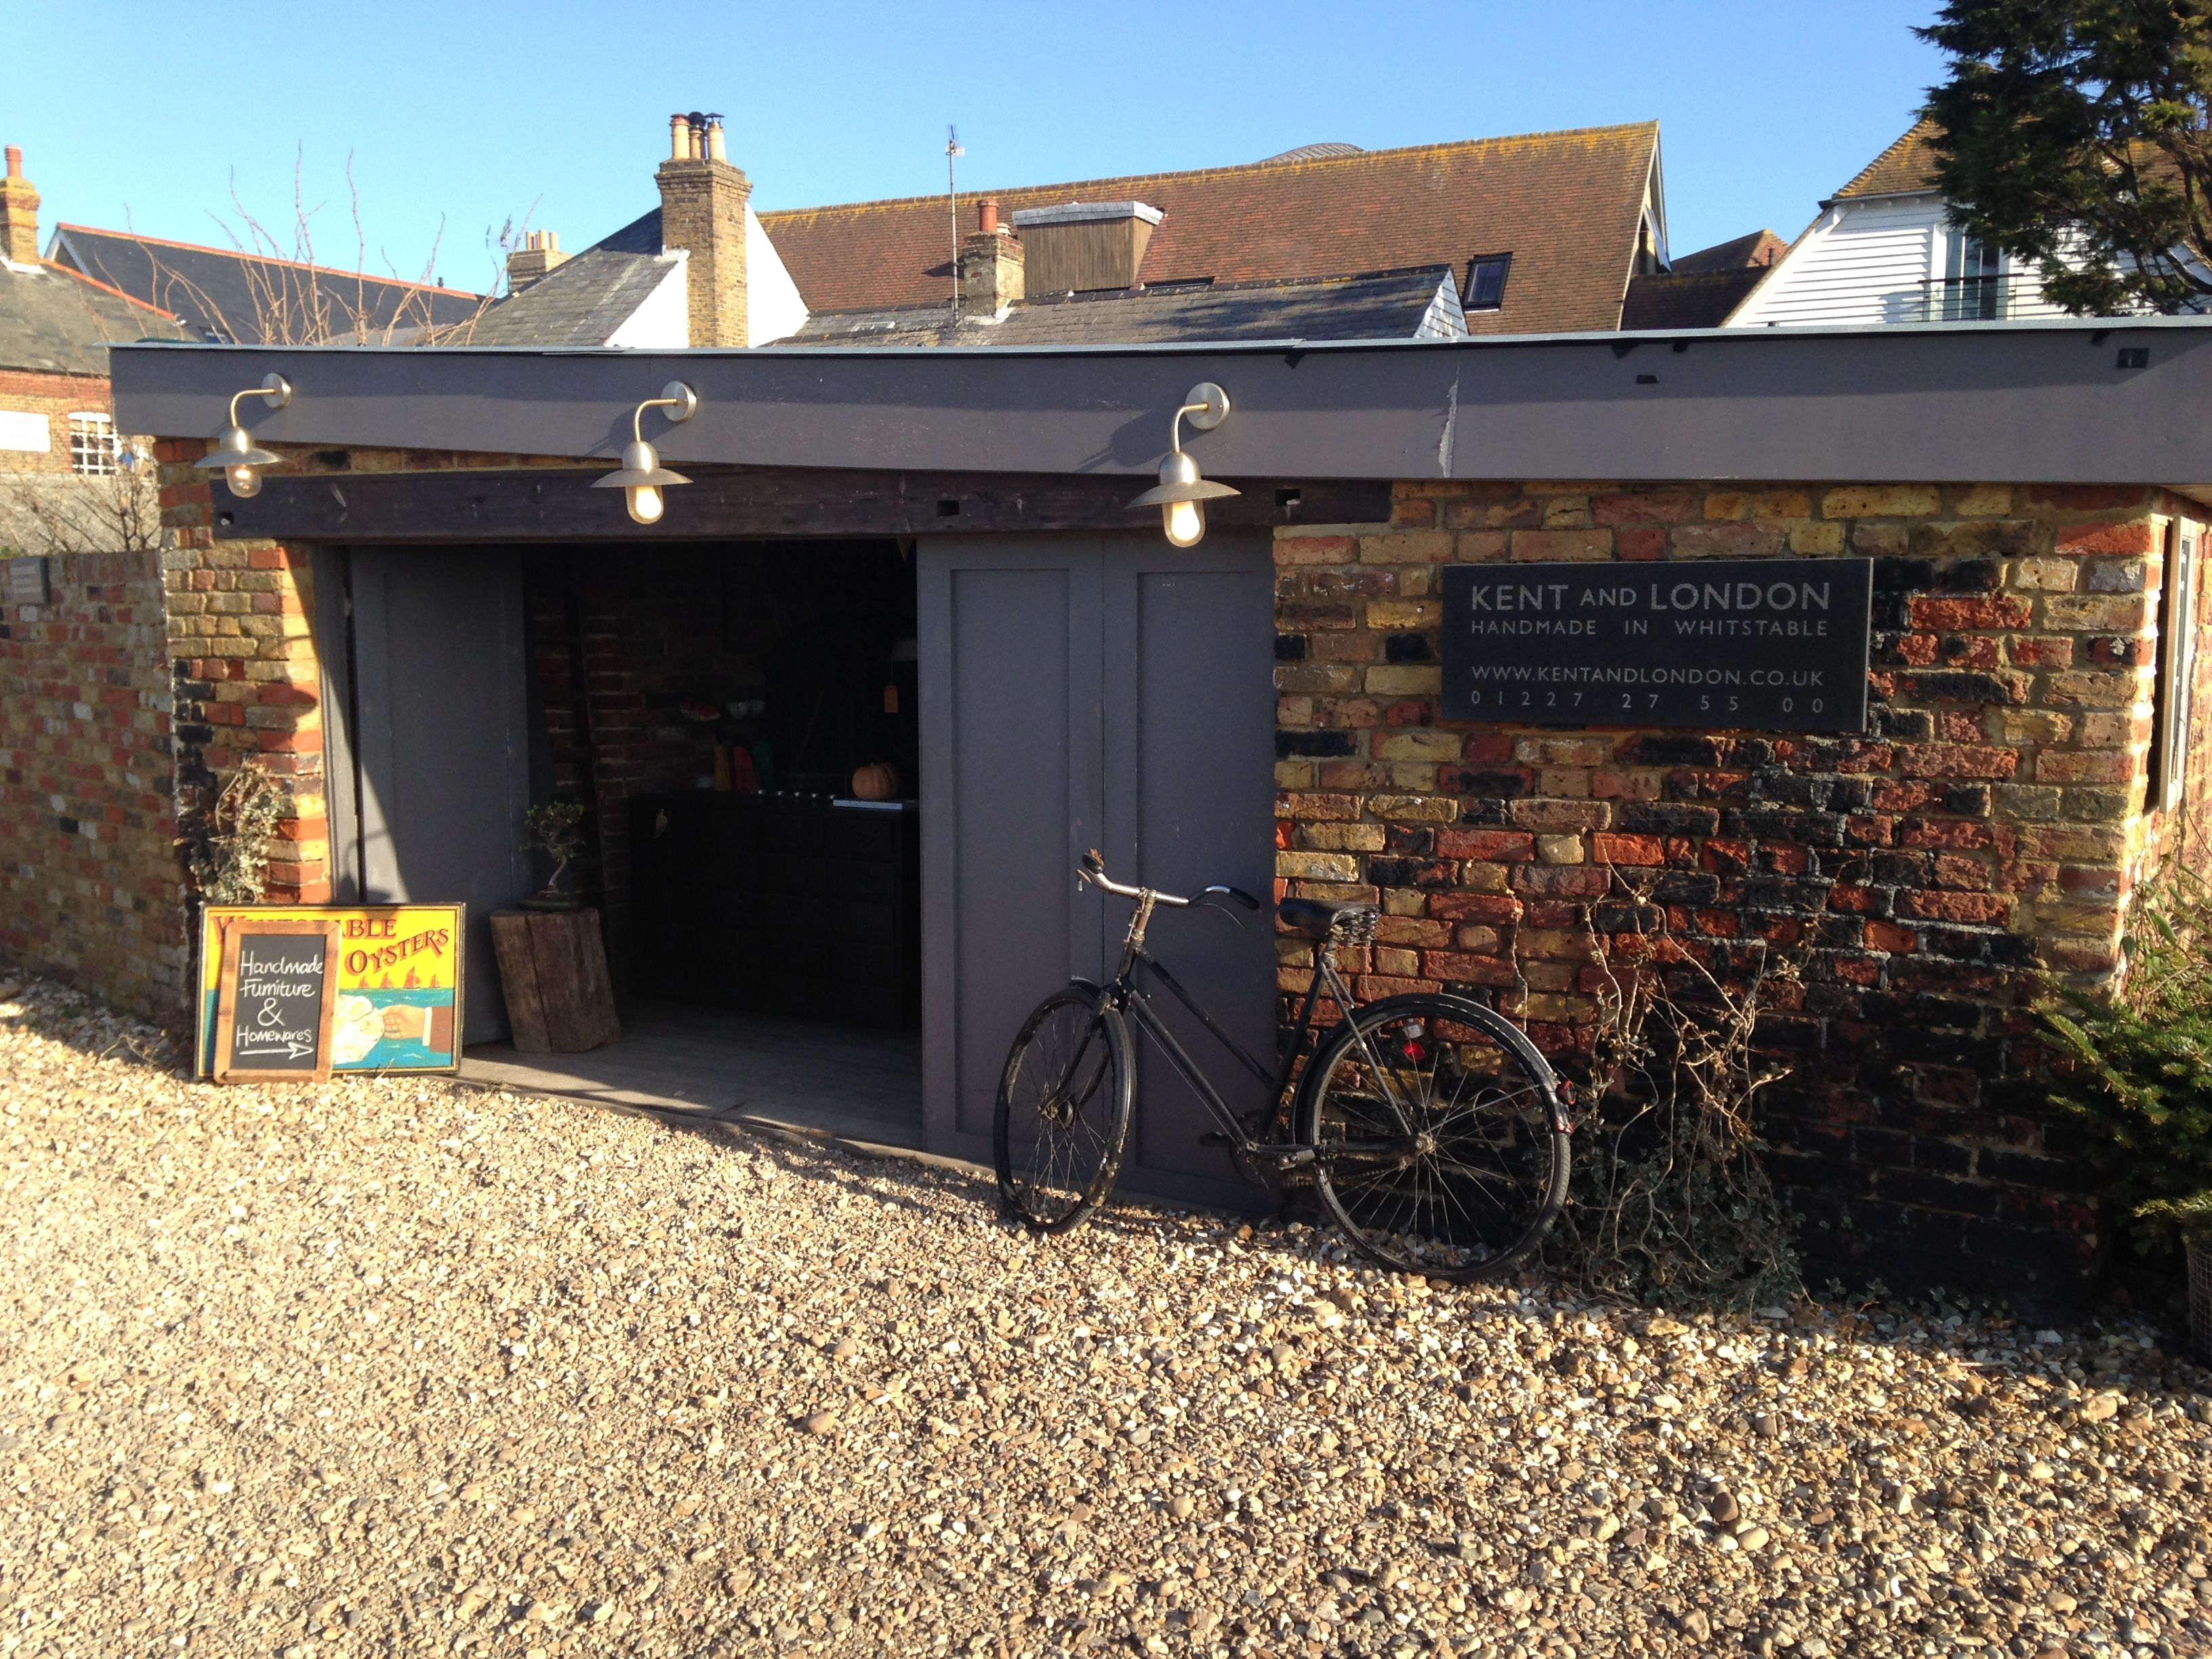 Kent and London shop on Whitstable sea front